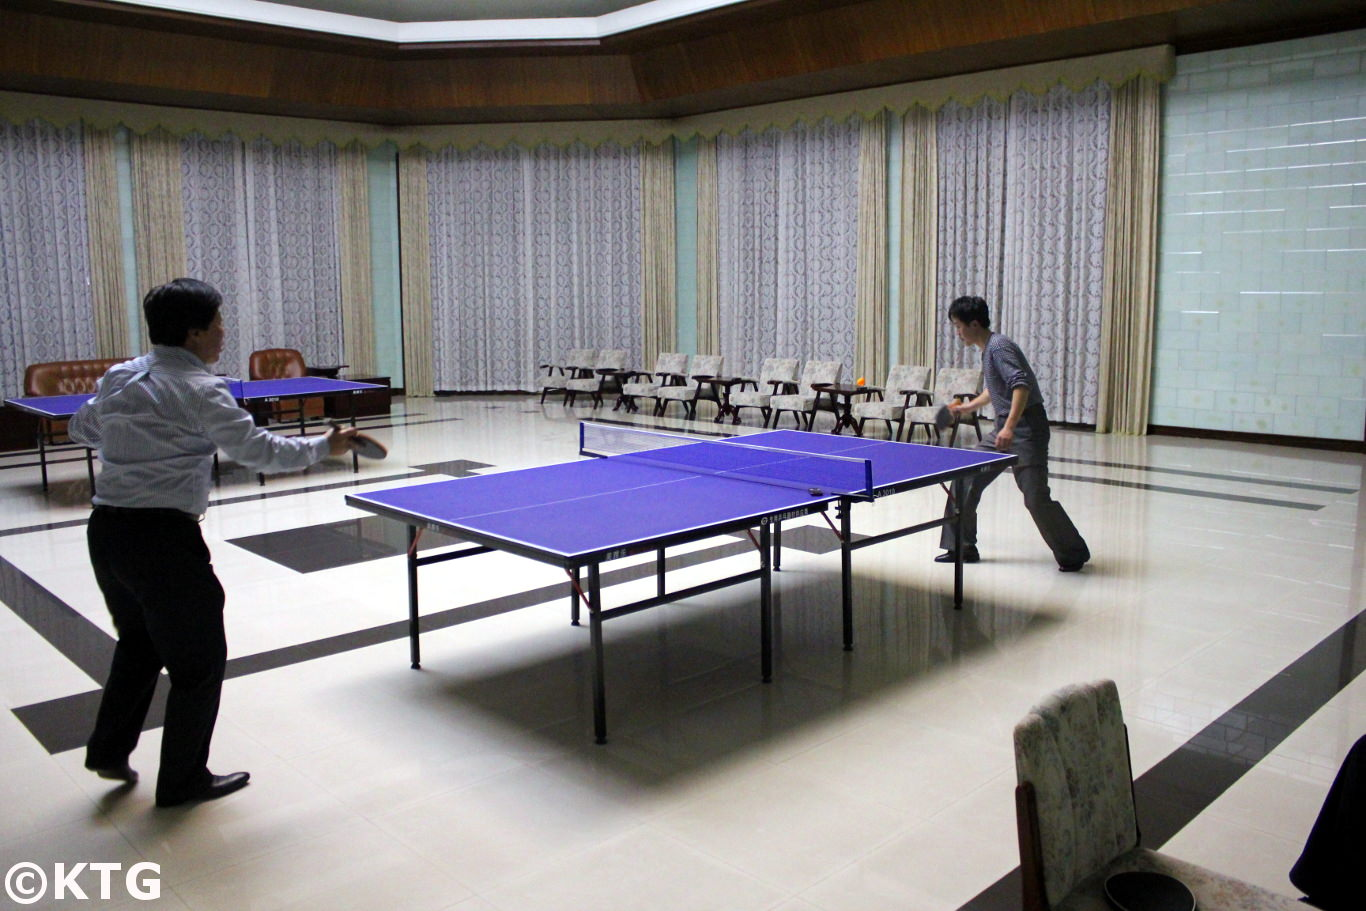 North Korean men playing table tennis at the Ryonggang Hot Spa Hotel near Nampo city in North Korea, DPRK. Picture taken by KTG Travel